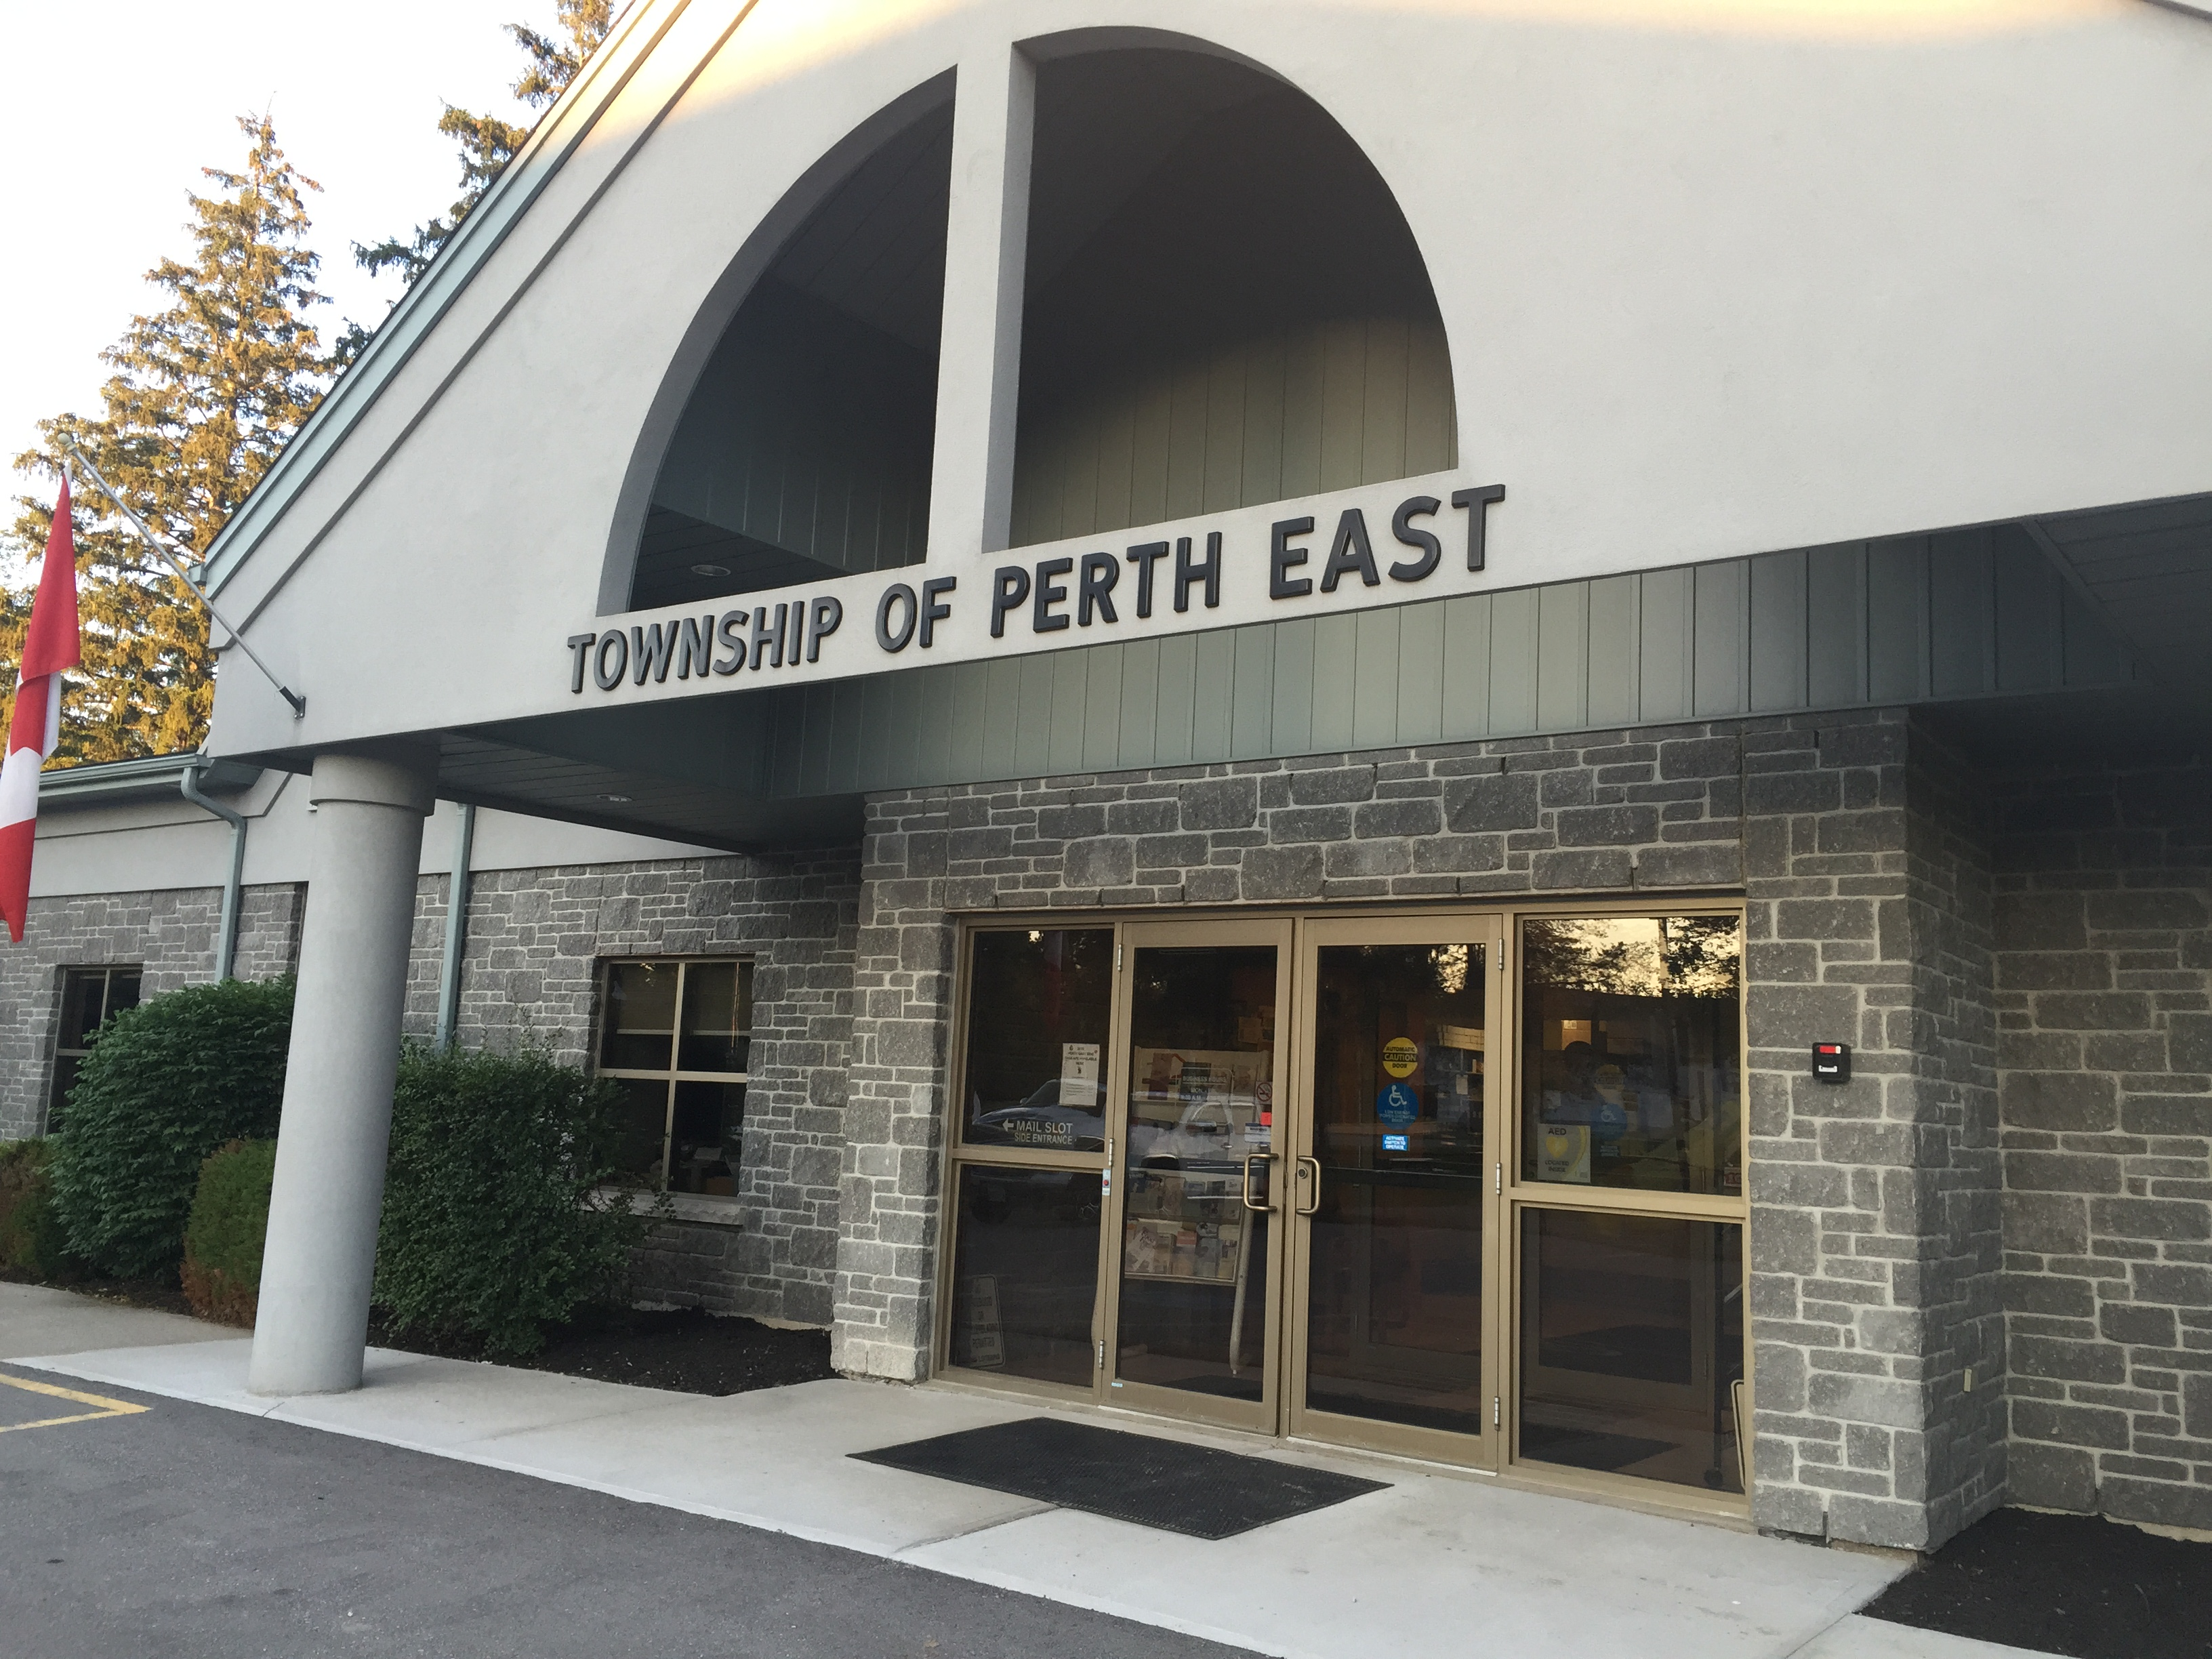 Perth East budget increases levy